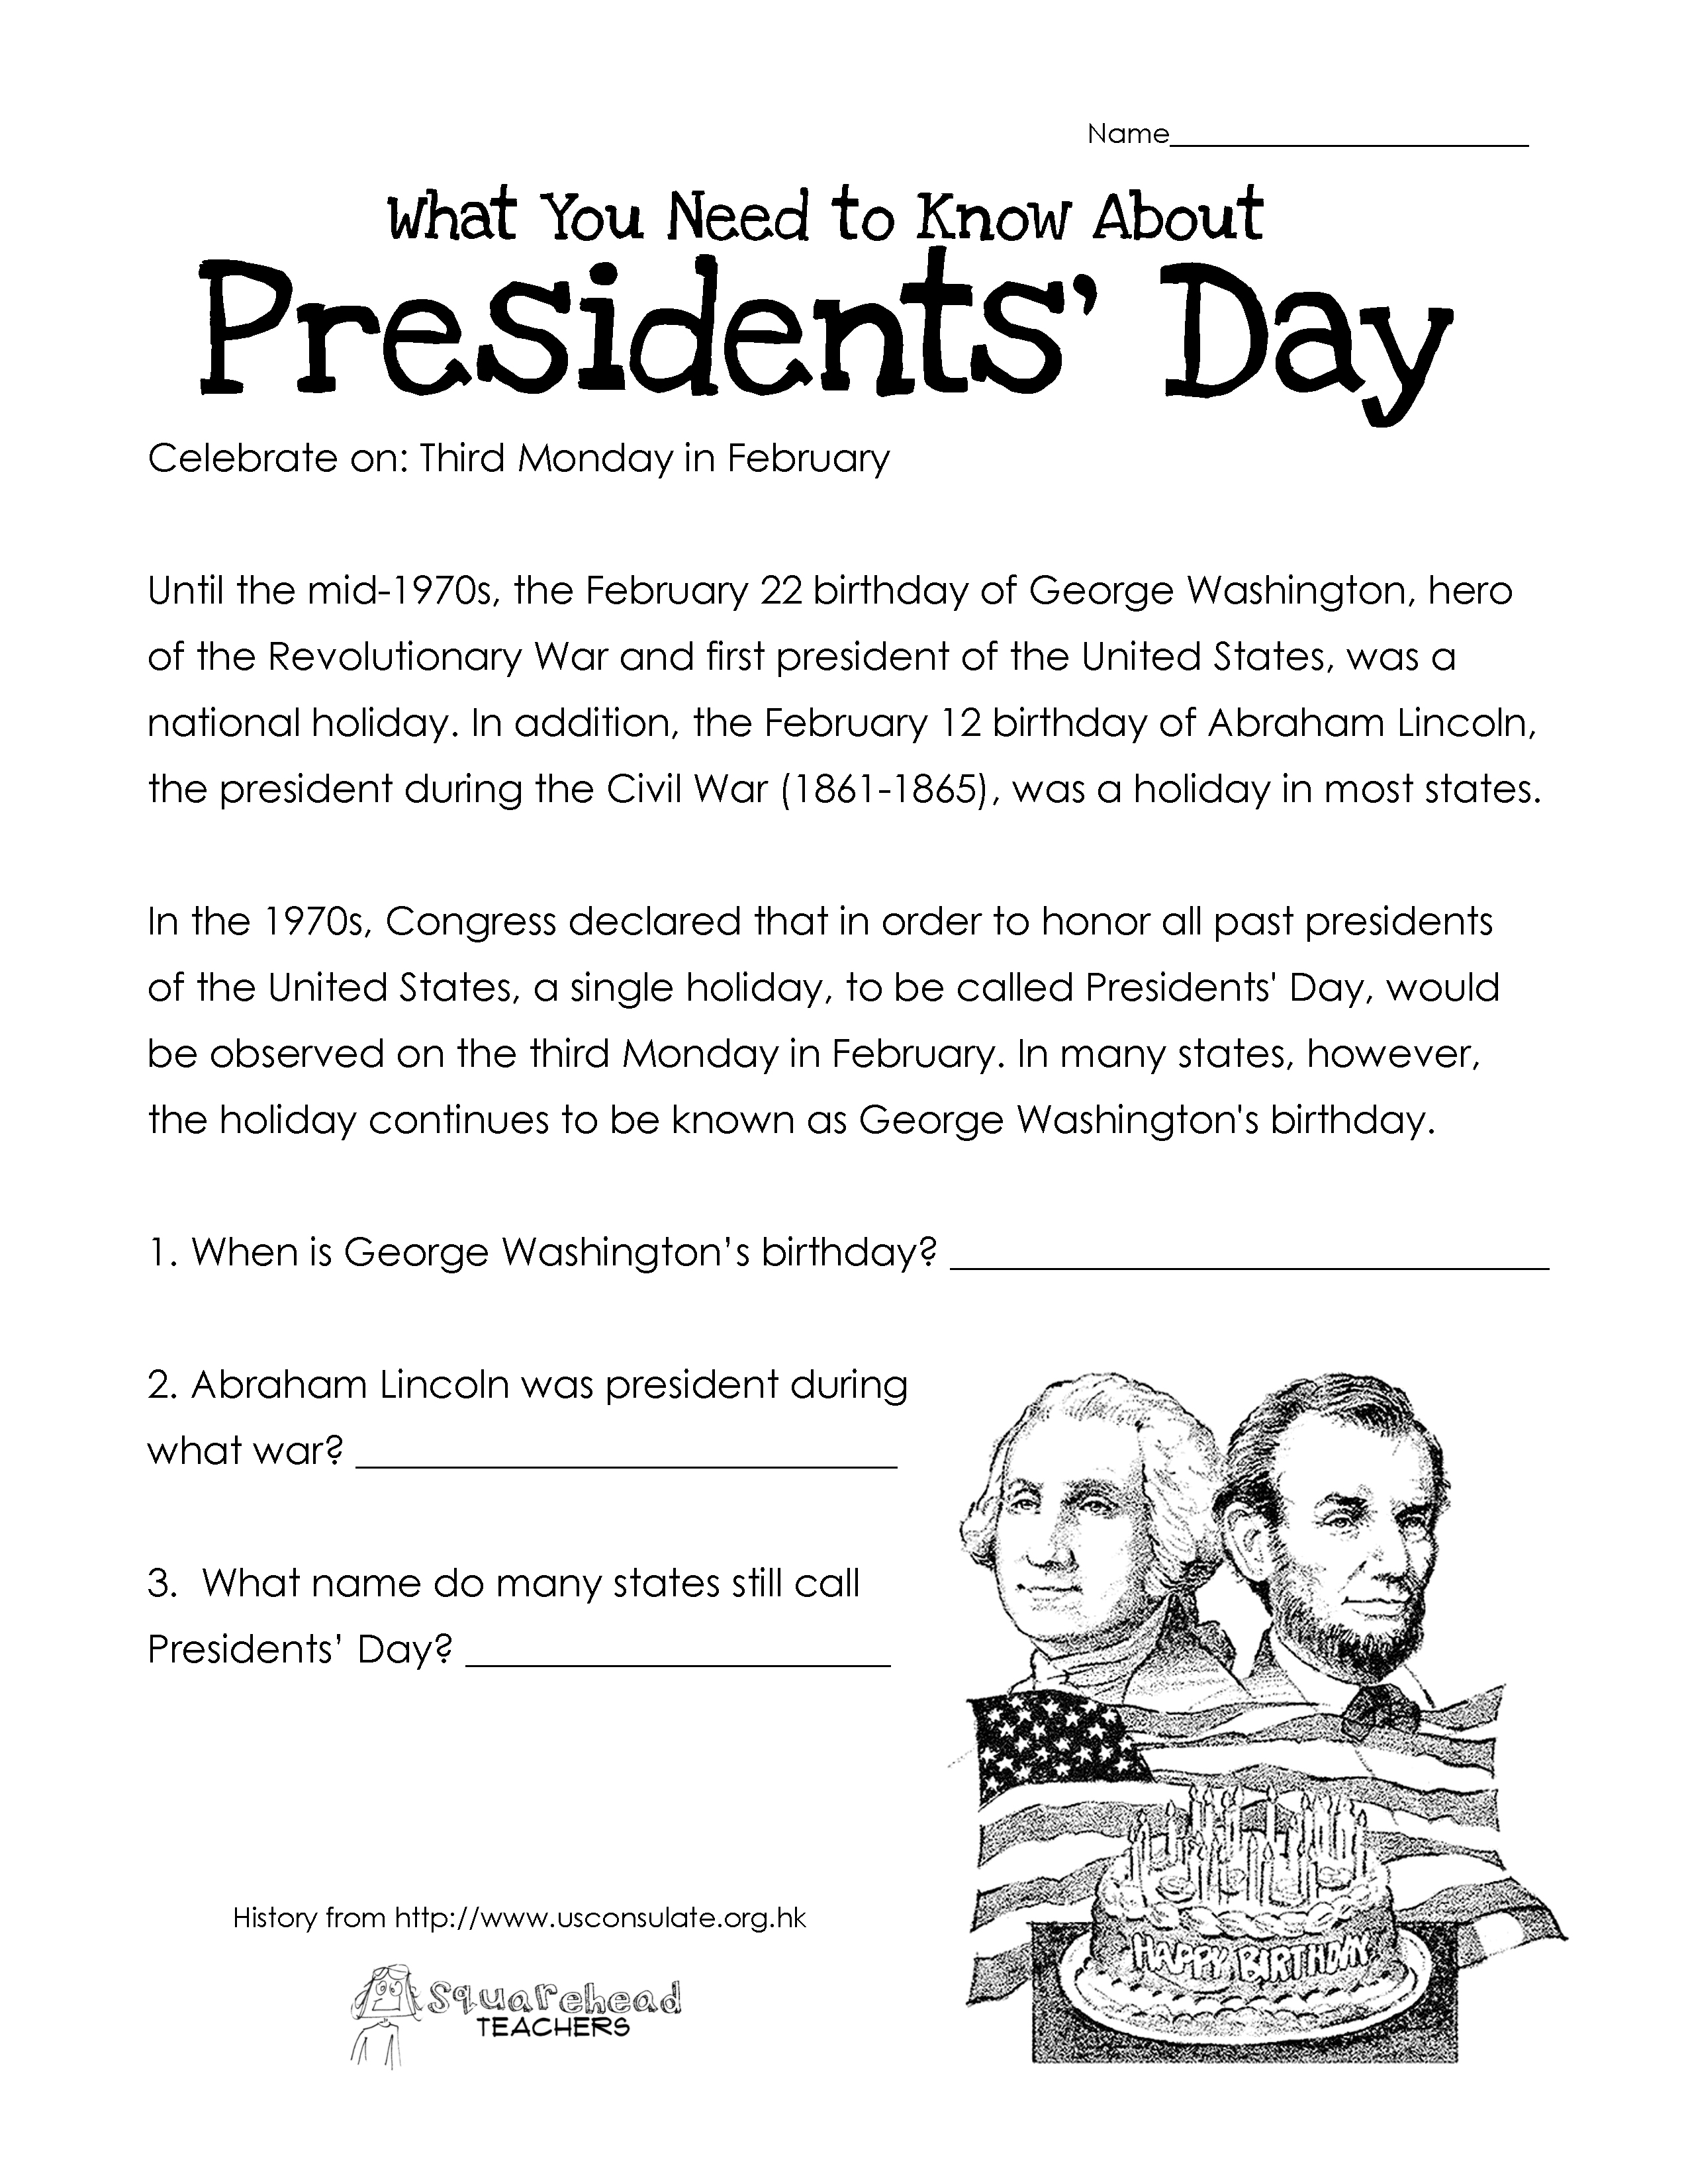 worksheet Free Presidents Day Worksheets presidents day free worksheet updated squarehead teachers day